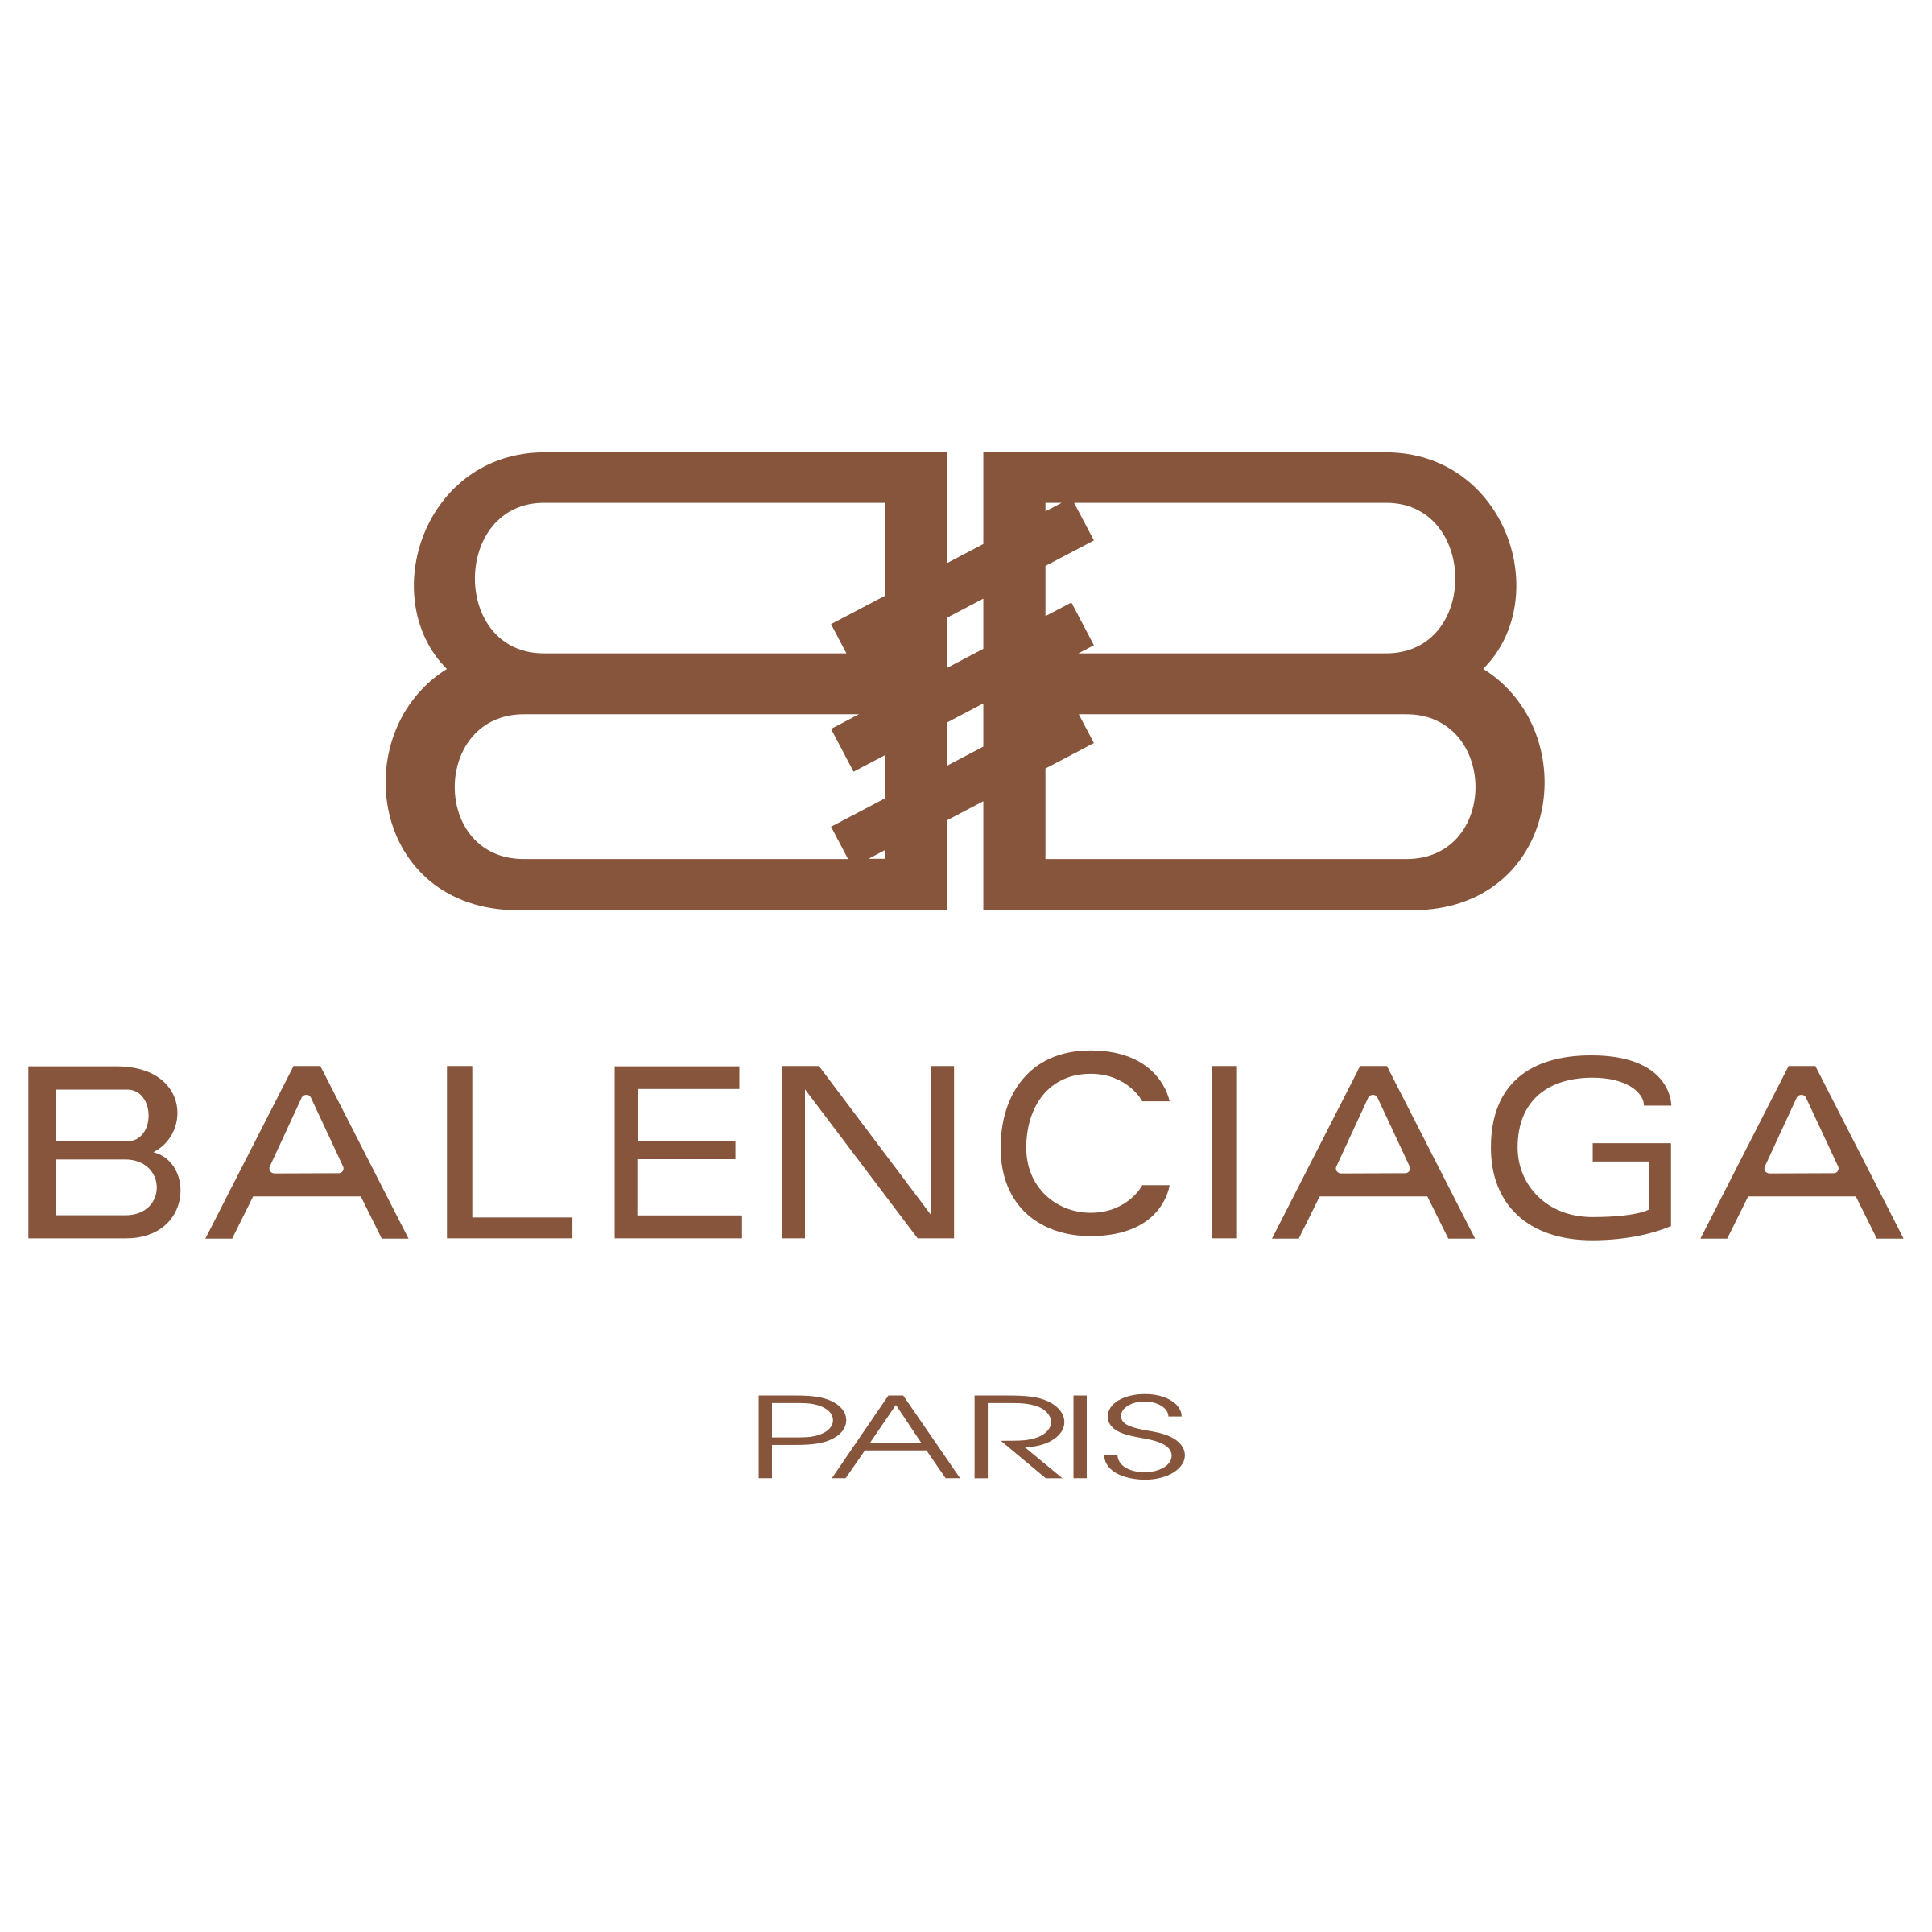 Balenciaga Logo - Balenciaga Logo PNG Transparent & SVG Vector - Freebie Supply